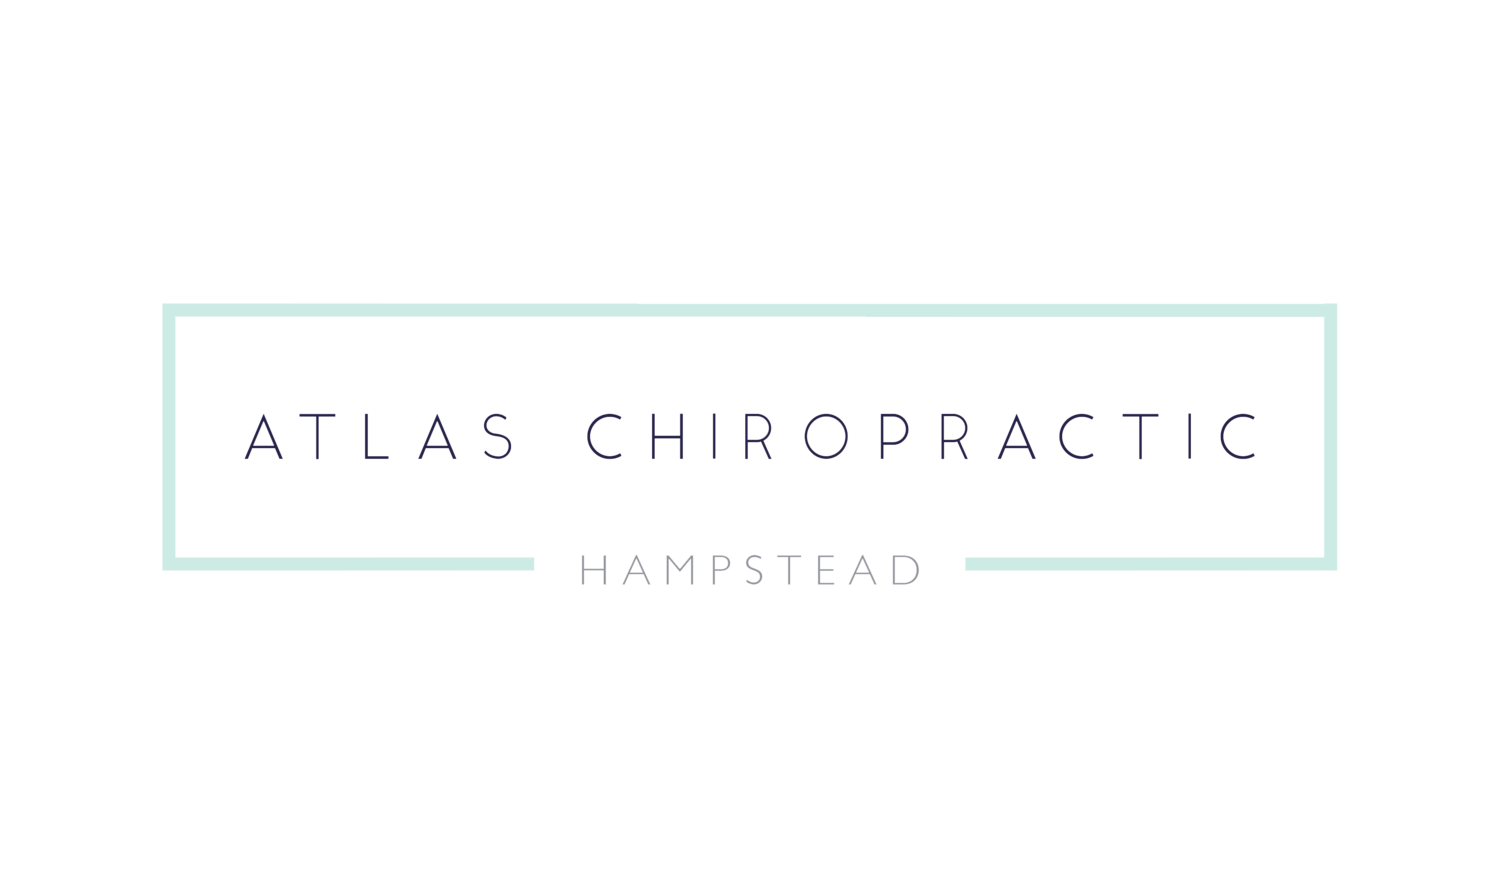 Atlas Chiropractic Hampstead